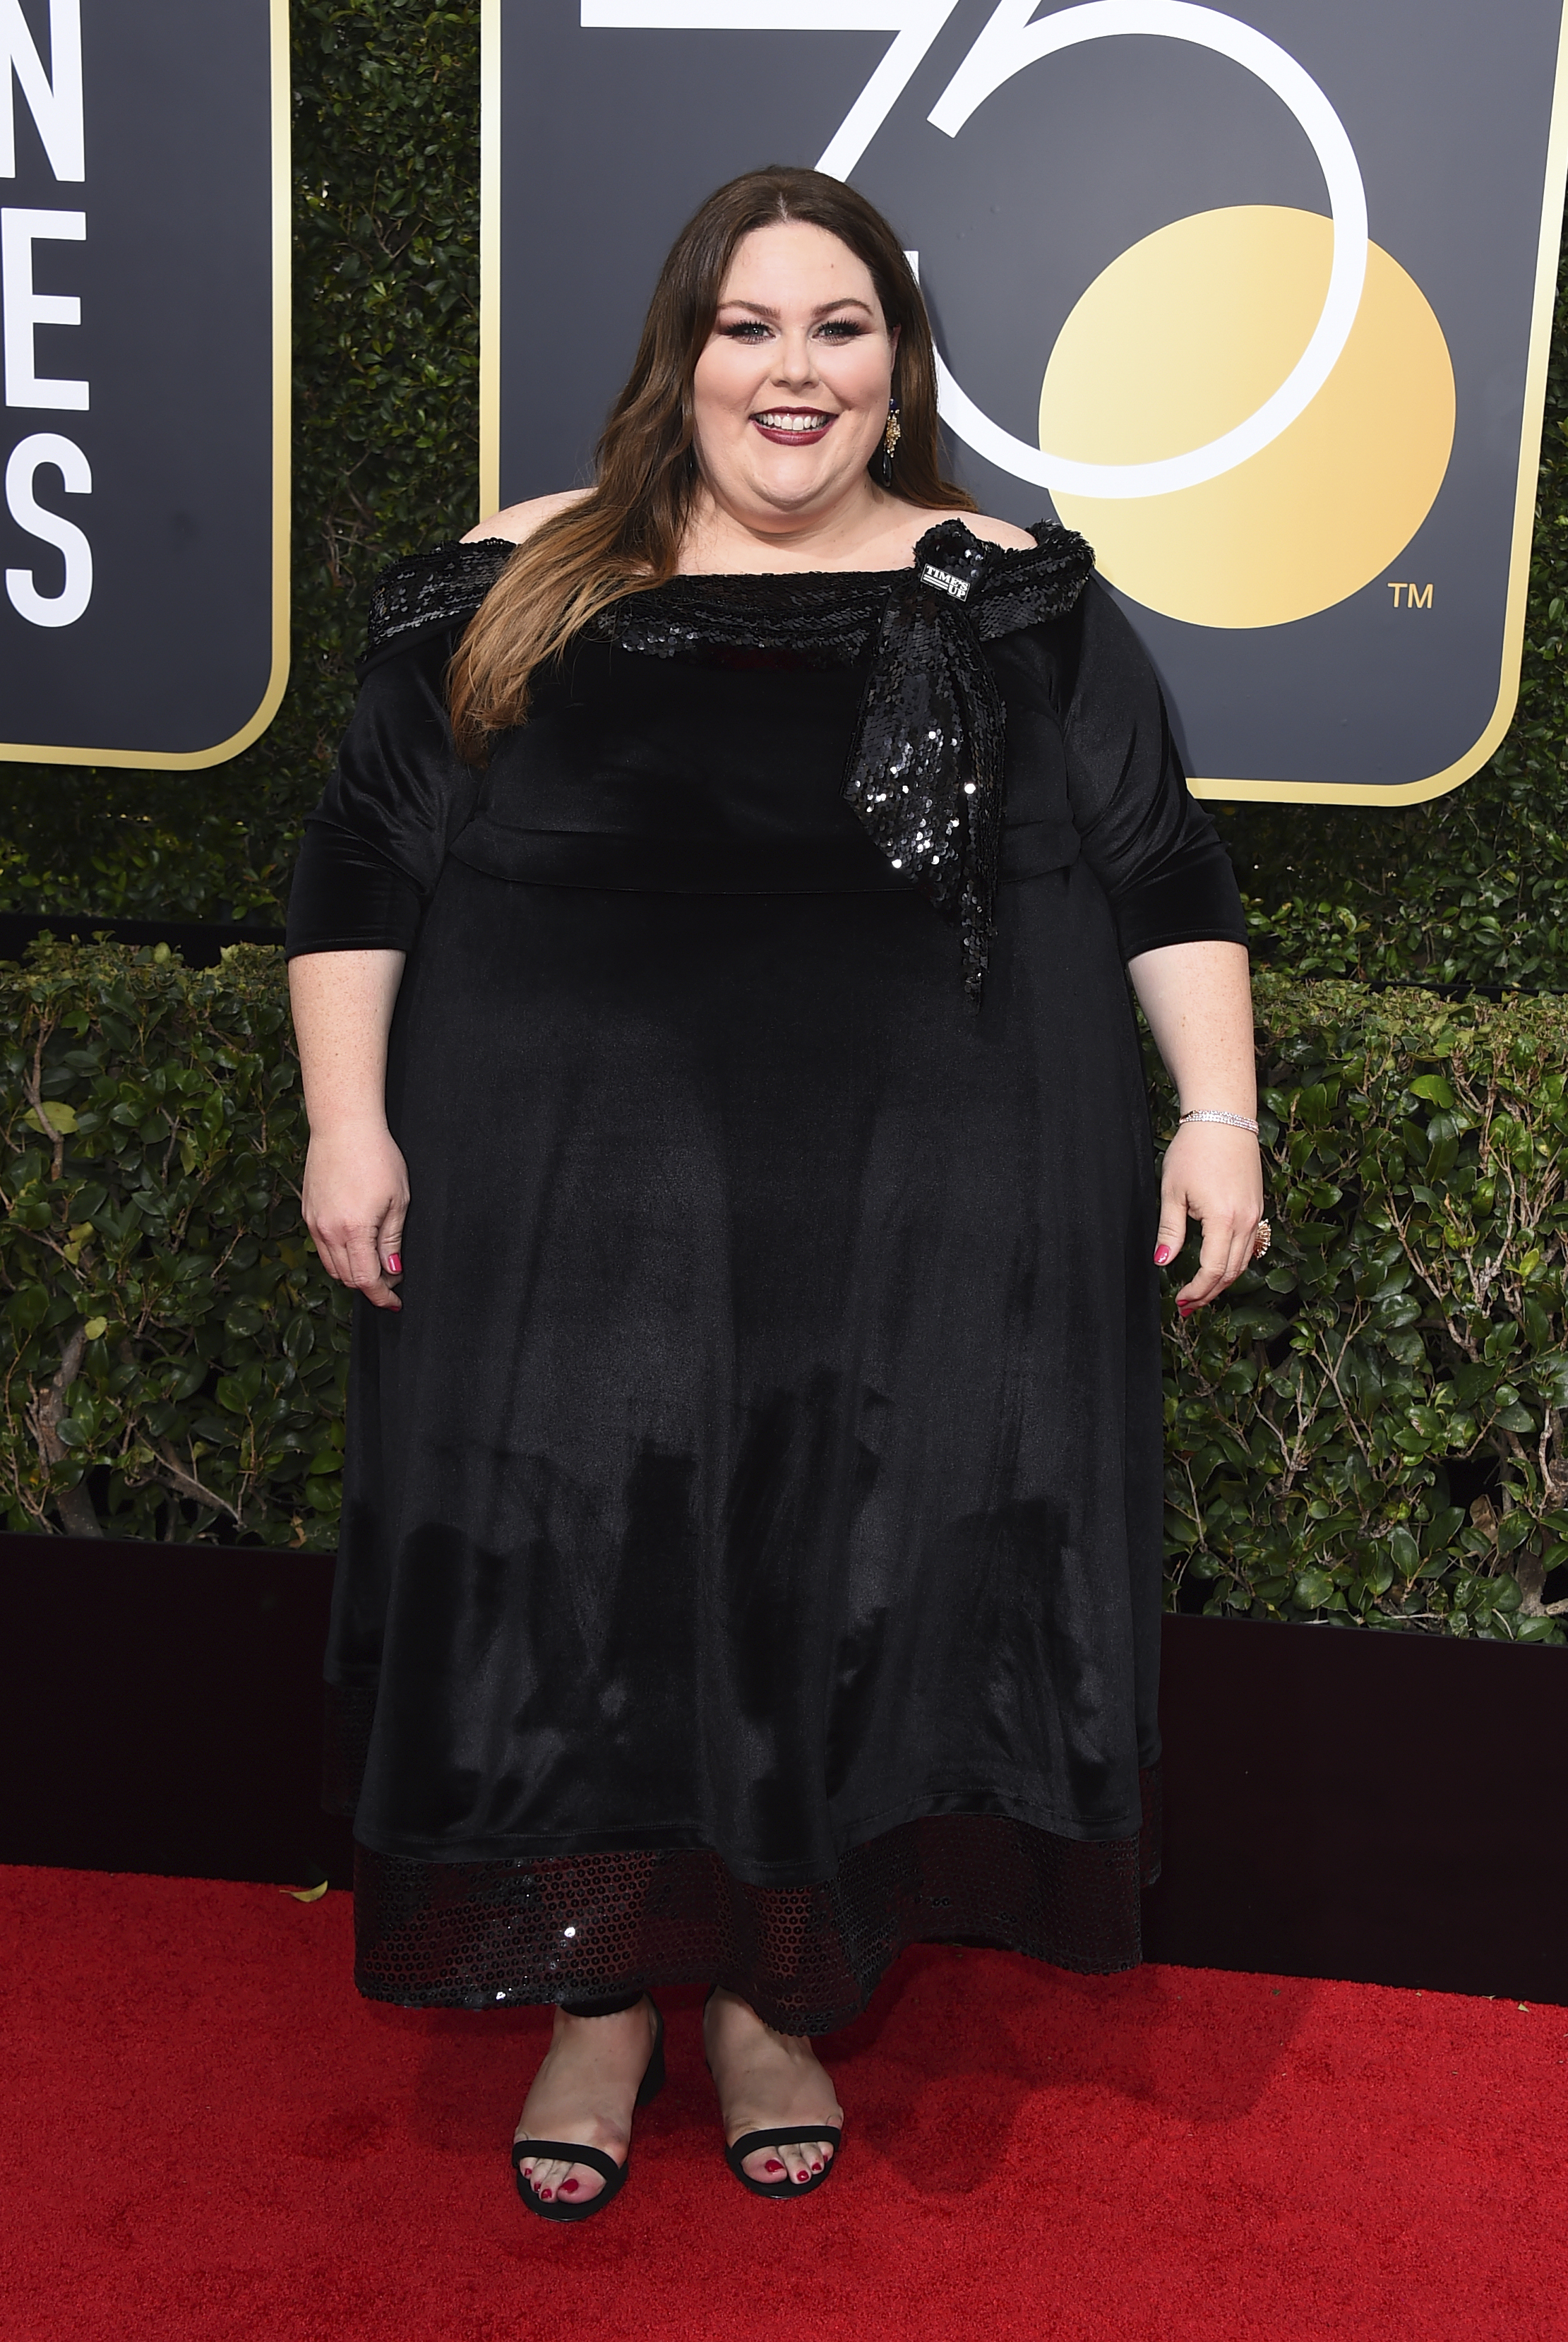 <div class='meta'><div class='origin-logo' data-origin='AP'></div><span class='caption-text' data-credit='Jordan Strauss/Invision/AP'>Chrissy Metz arrives at the 75th annual Golden Globe Awards at the Beverly Hilton Hotel on Sunday, Jan. 7, 2018, in Beverly Hills, Calif.</span></div>